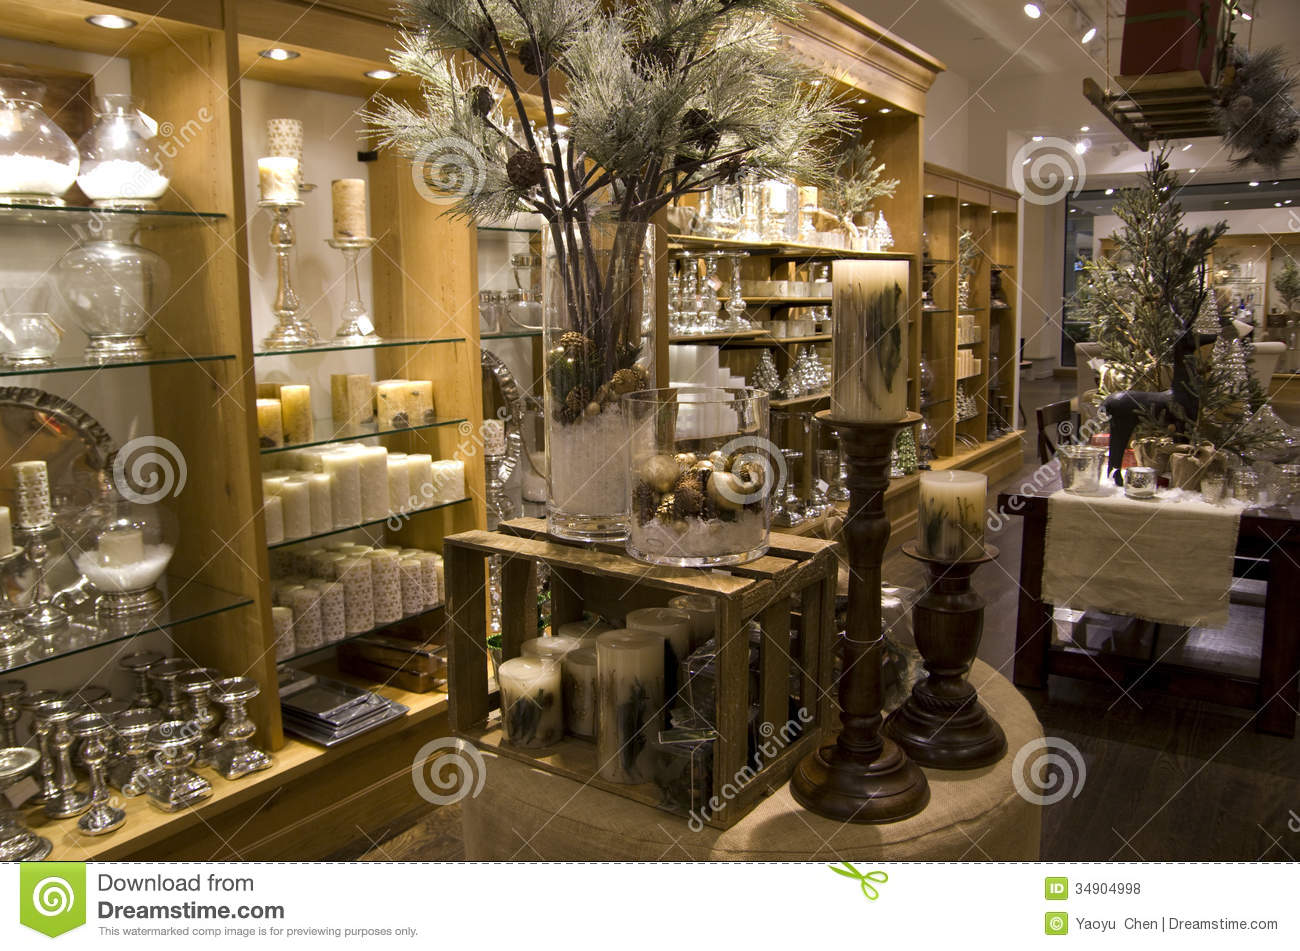 Best Home Decor Stores Home Decor Store Stock Photo Image Of Lighting Shelves